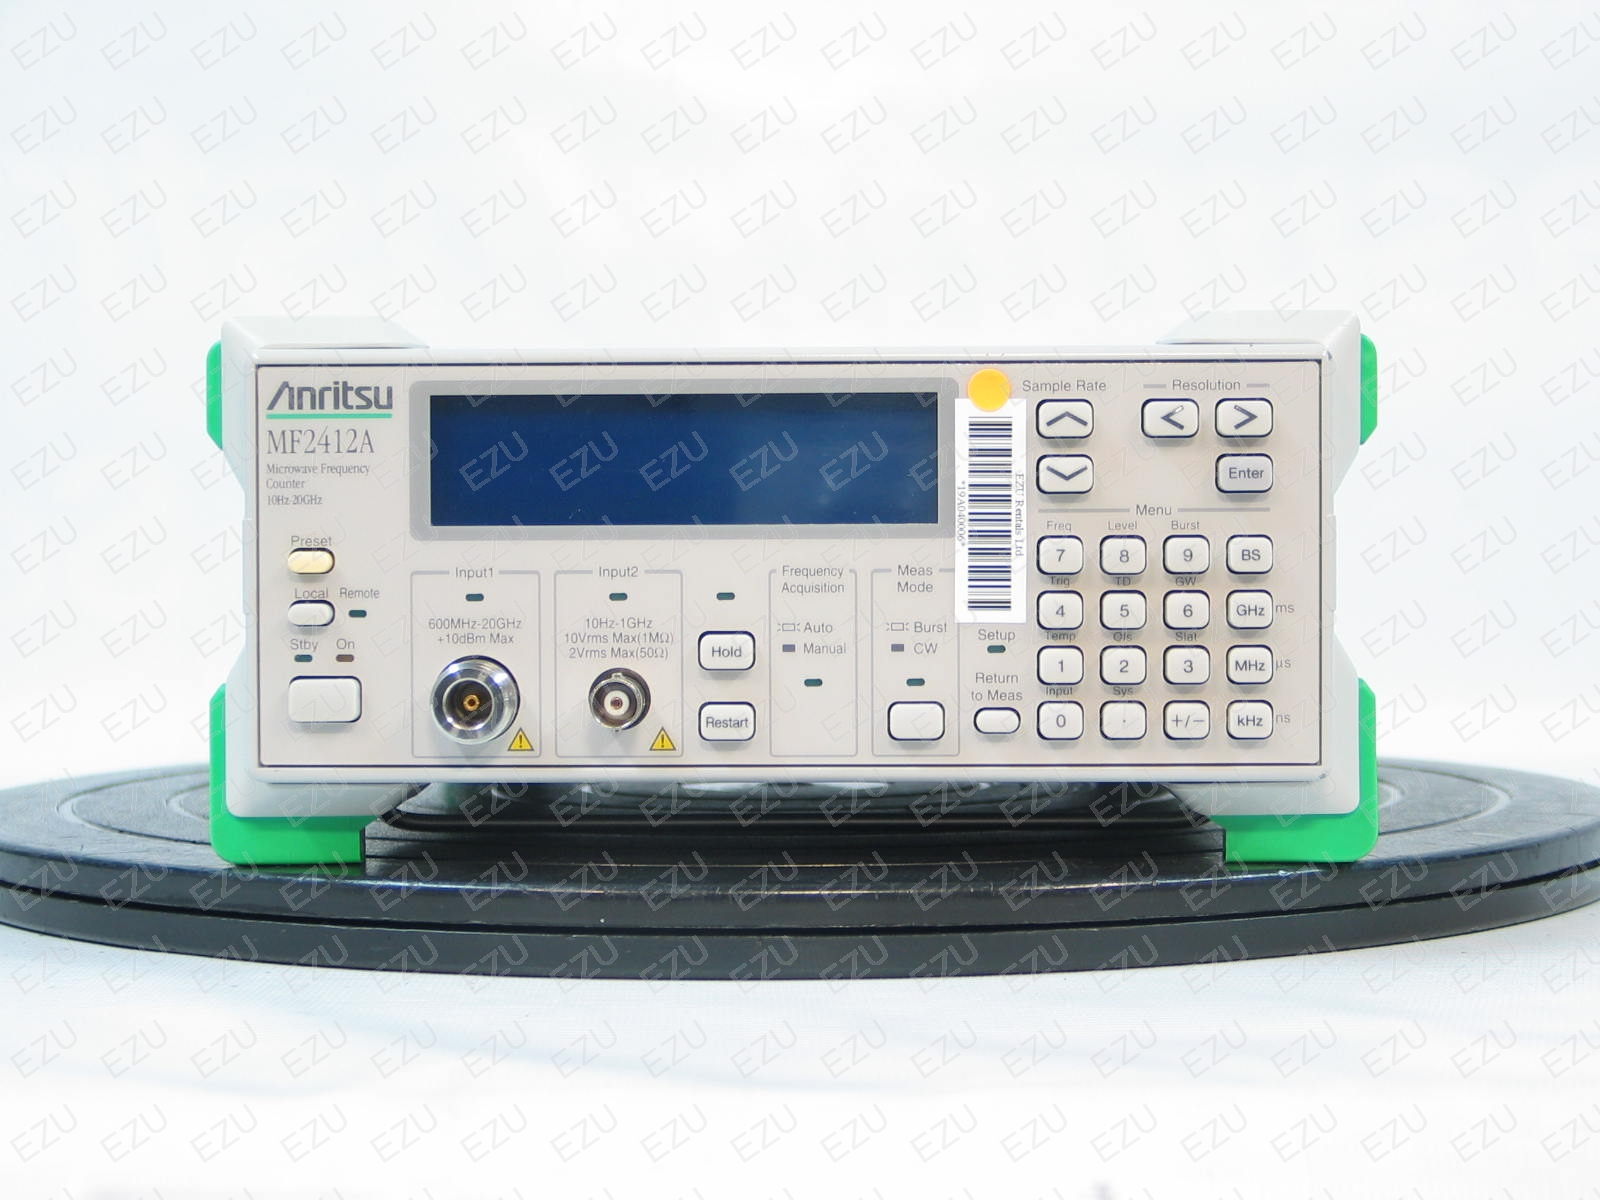 Anritsu Mf2412A 600 Mhz To 20 Ghz, Microwave Frequency Counter